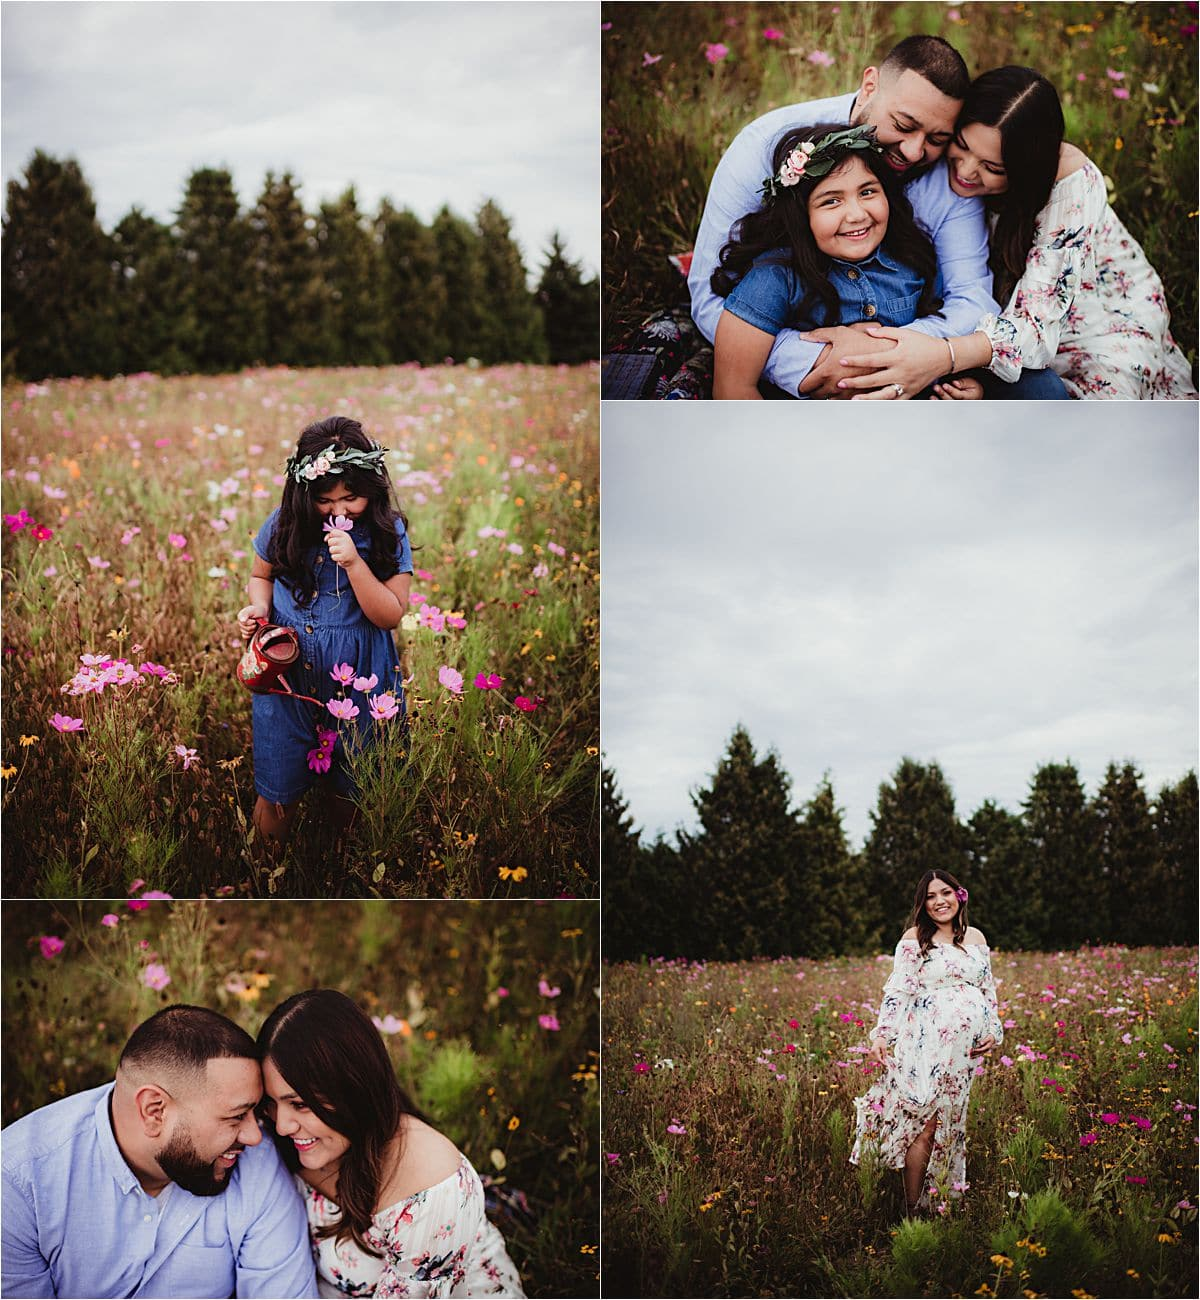 Wildflower Maternity Session Family in Flowers